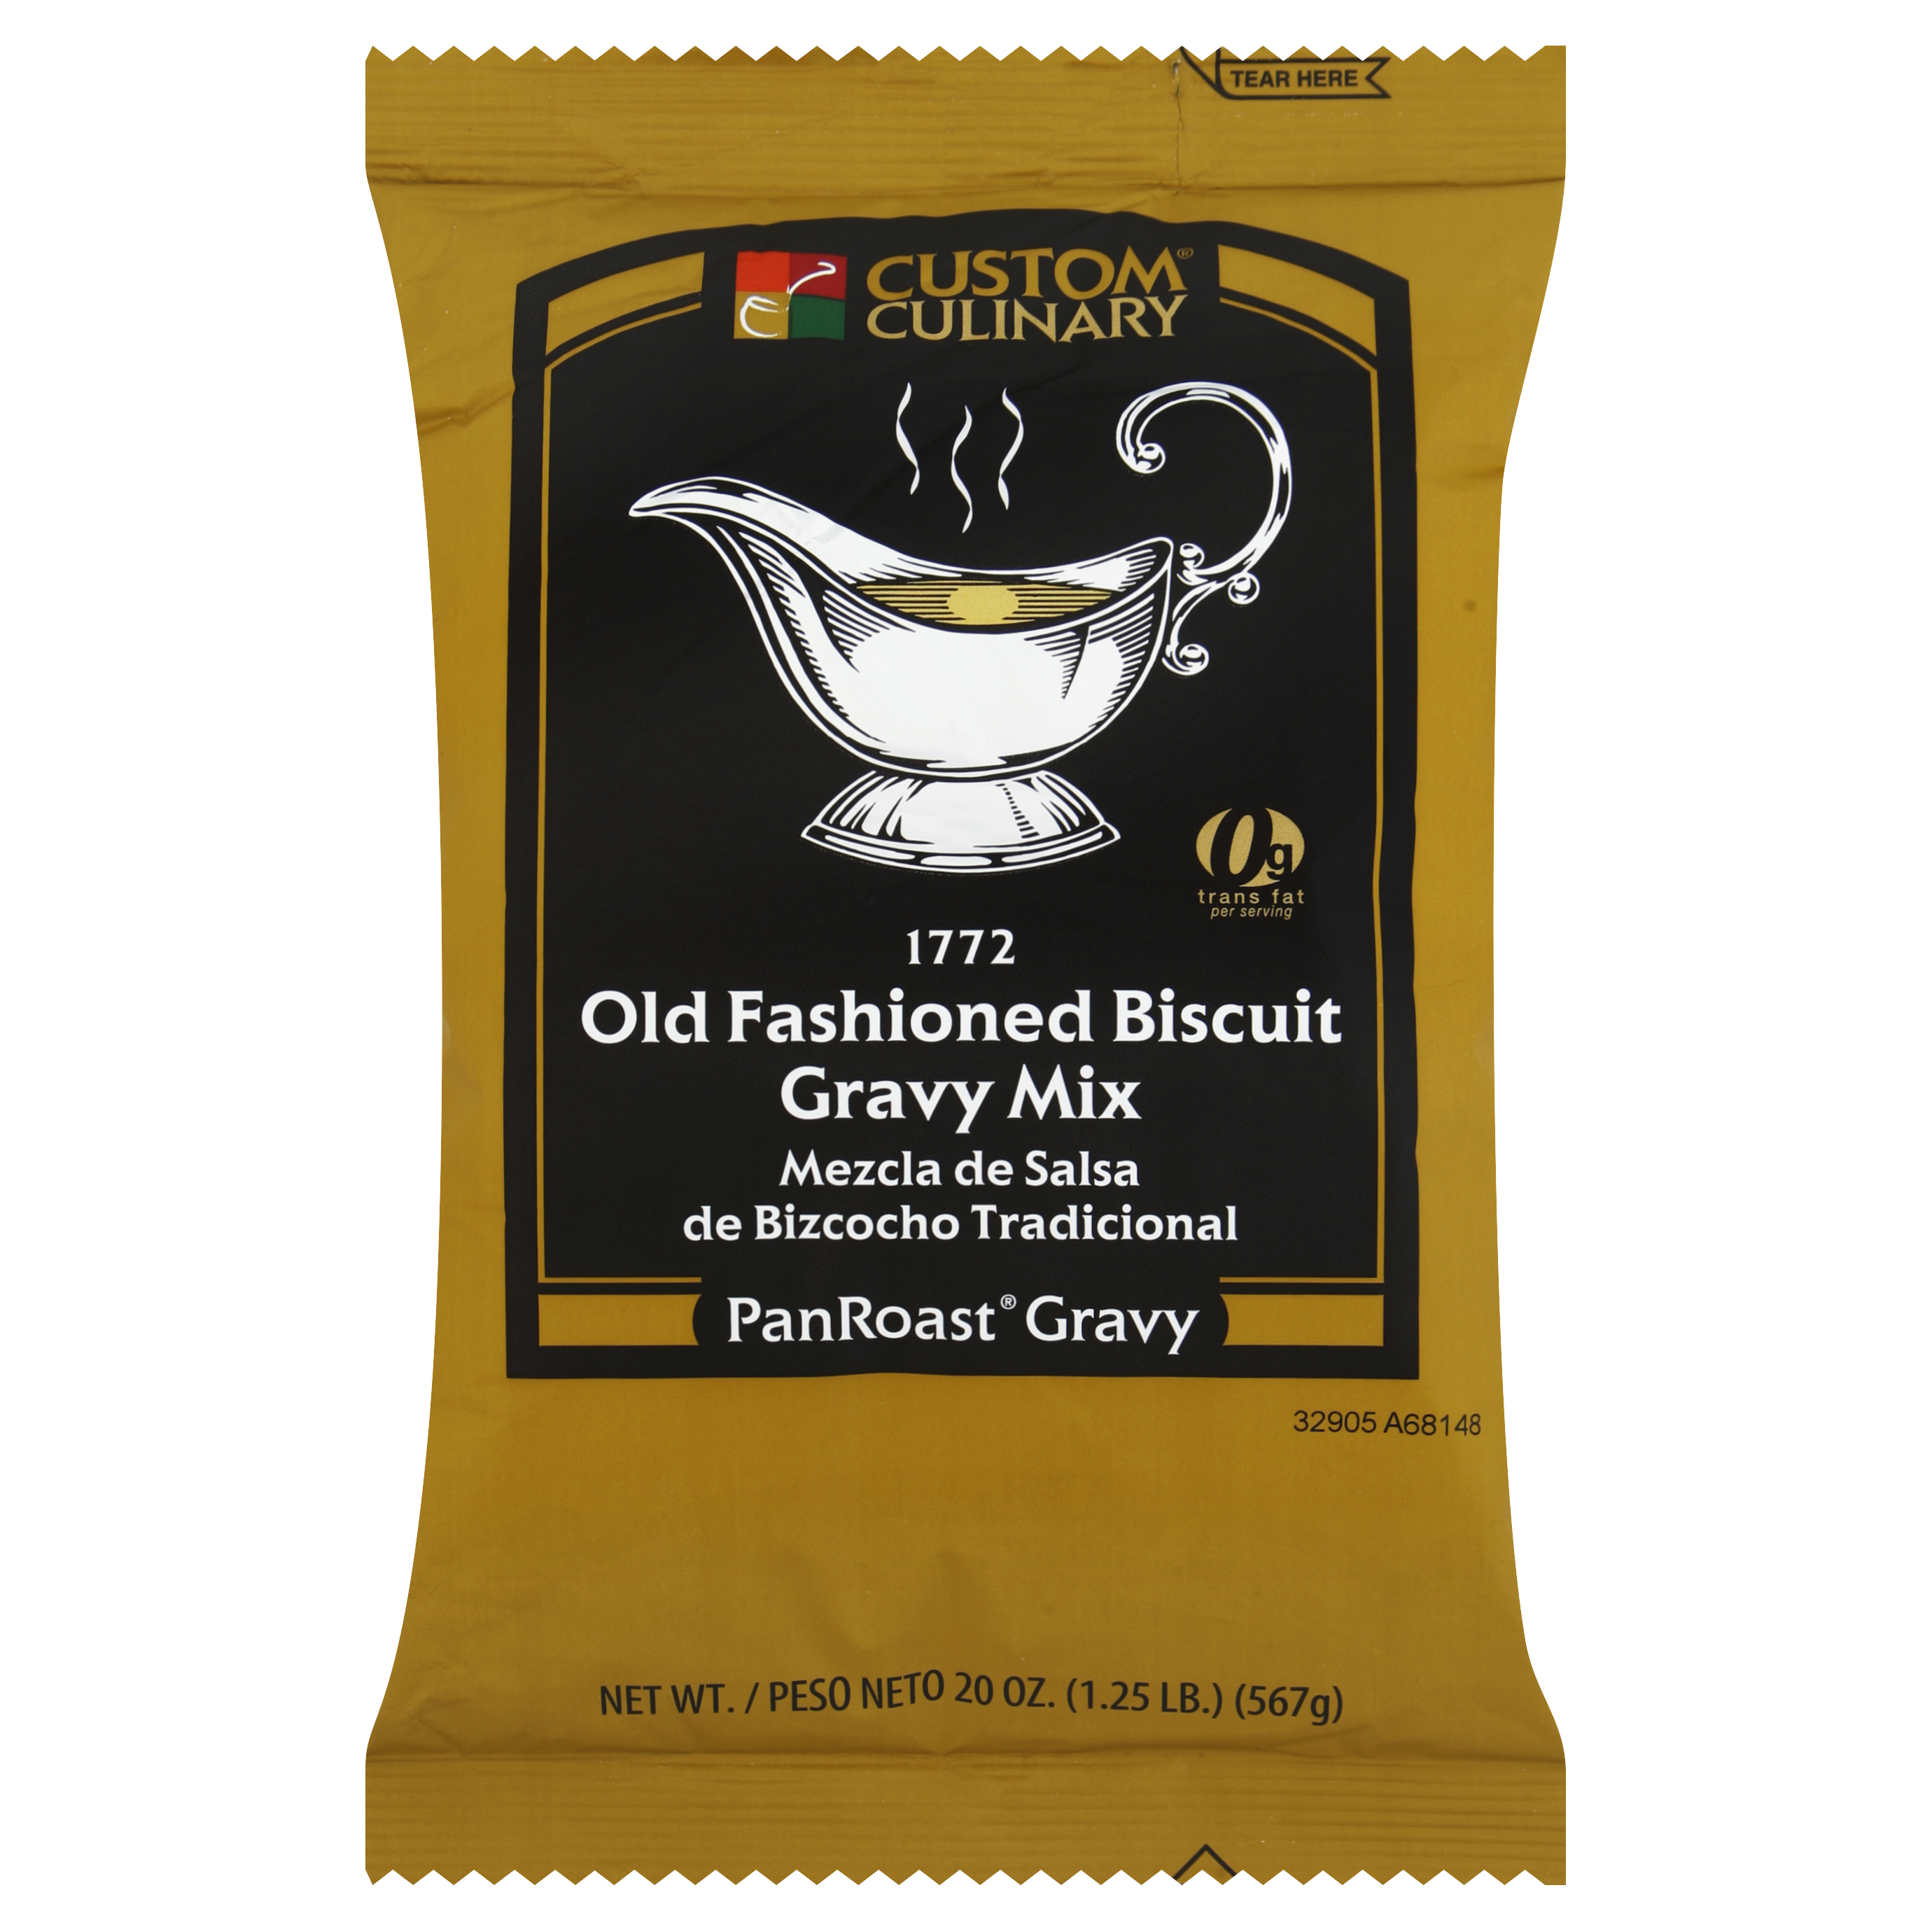 1772 - PanRoast Old Fashioned Biscuit Gravy Mix